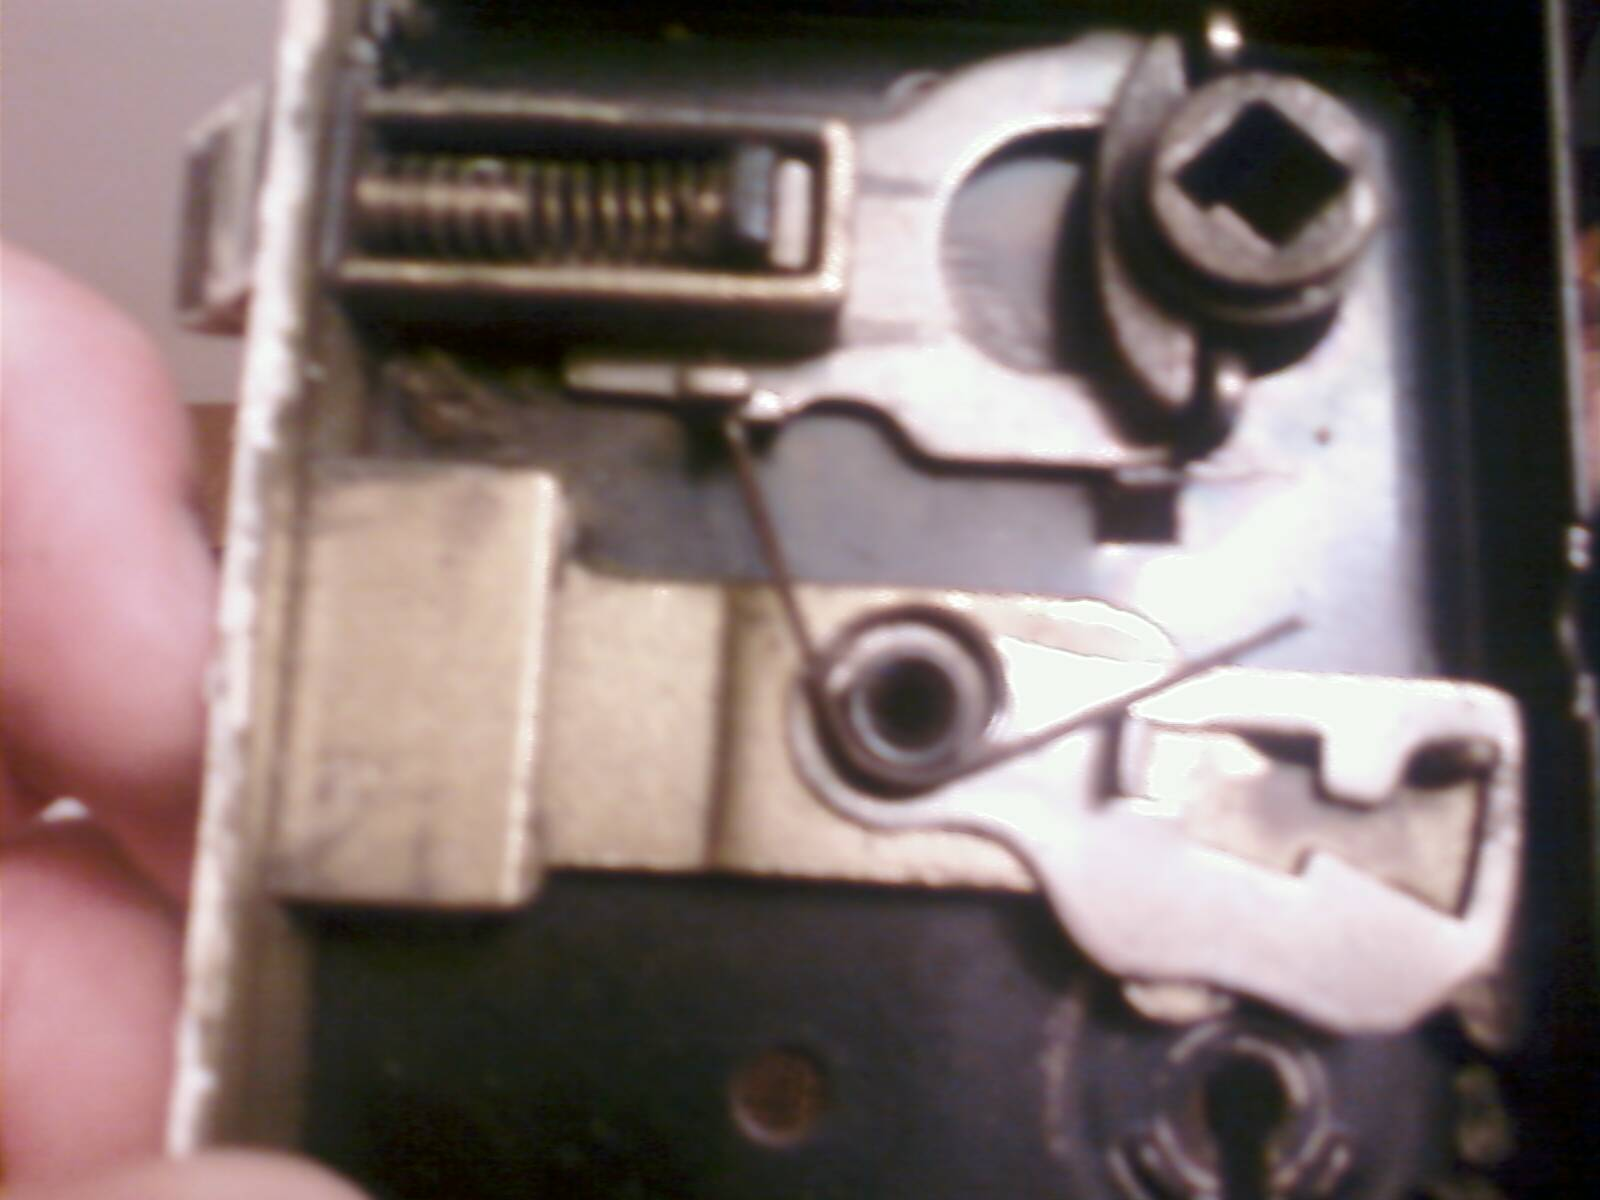 Fixing Old Doorknob-pic-0019.jpg